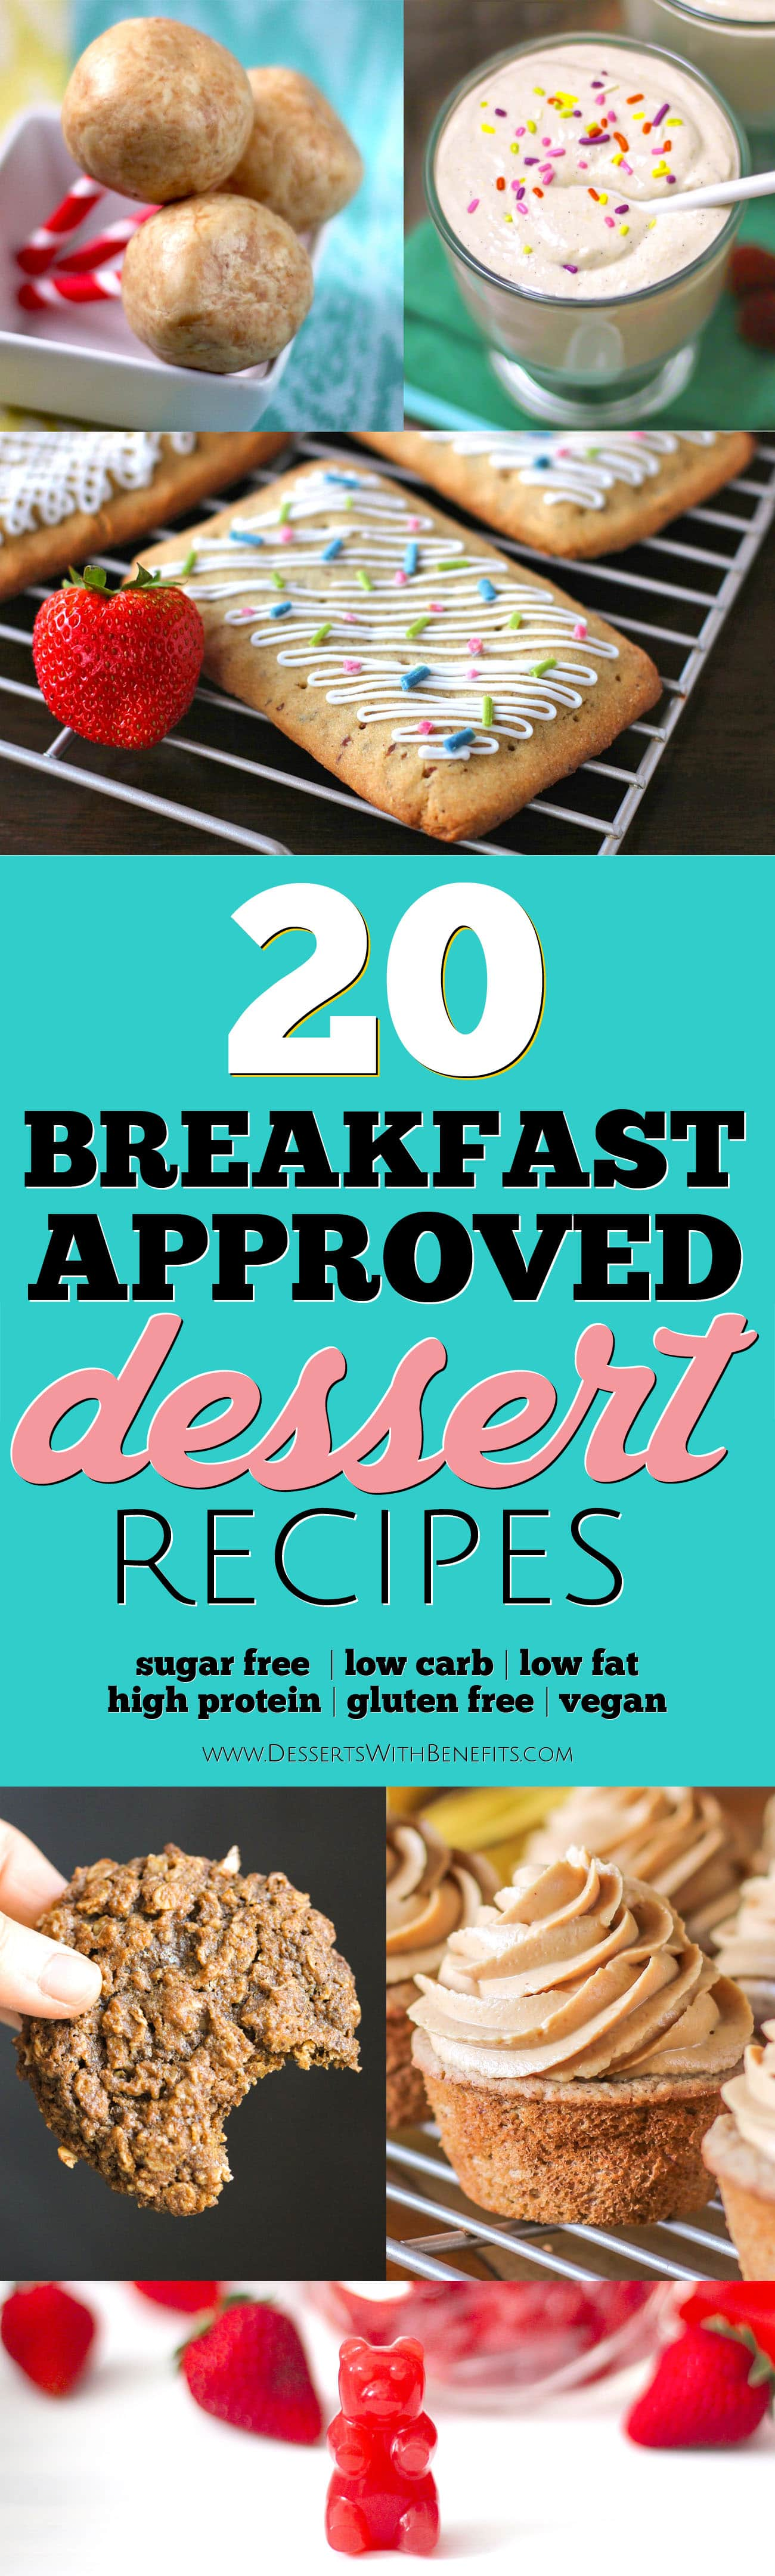 20 Healthy Desserts You Can Eat For Breakfast! From Homemade Pop Tarts to Fudge Brownies to Cupcakes and more... and yes, they're ALL breakfast-approved! With refined sugar free, low carb, low fat, high protein, gluten free, and vegan options, this roundup is for everyone!